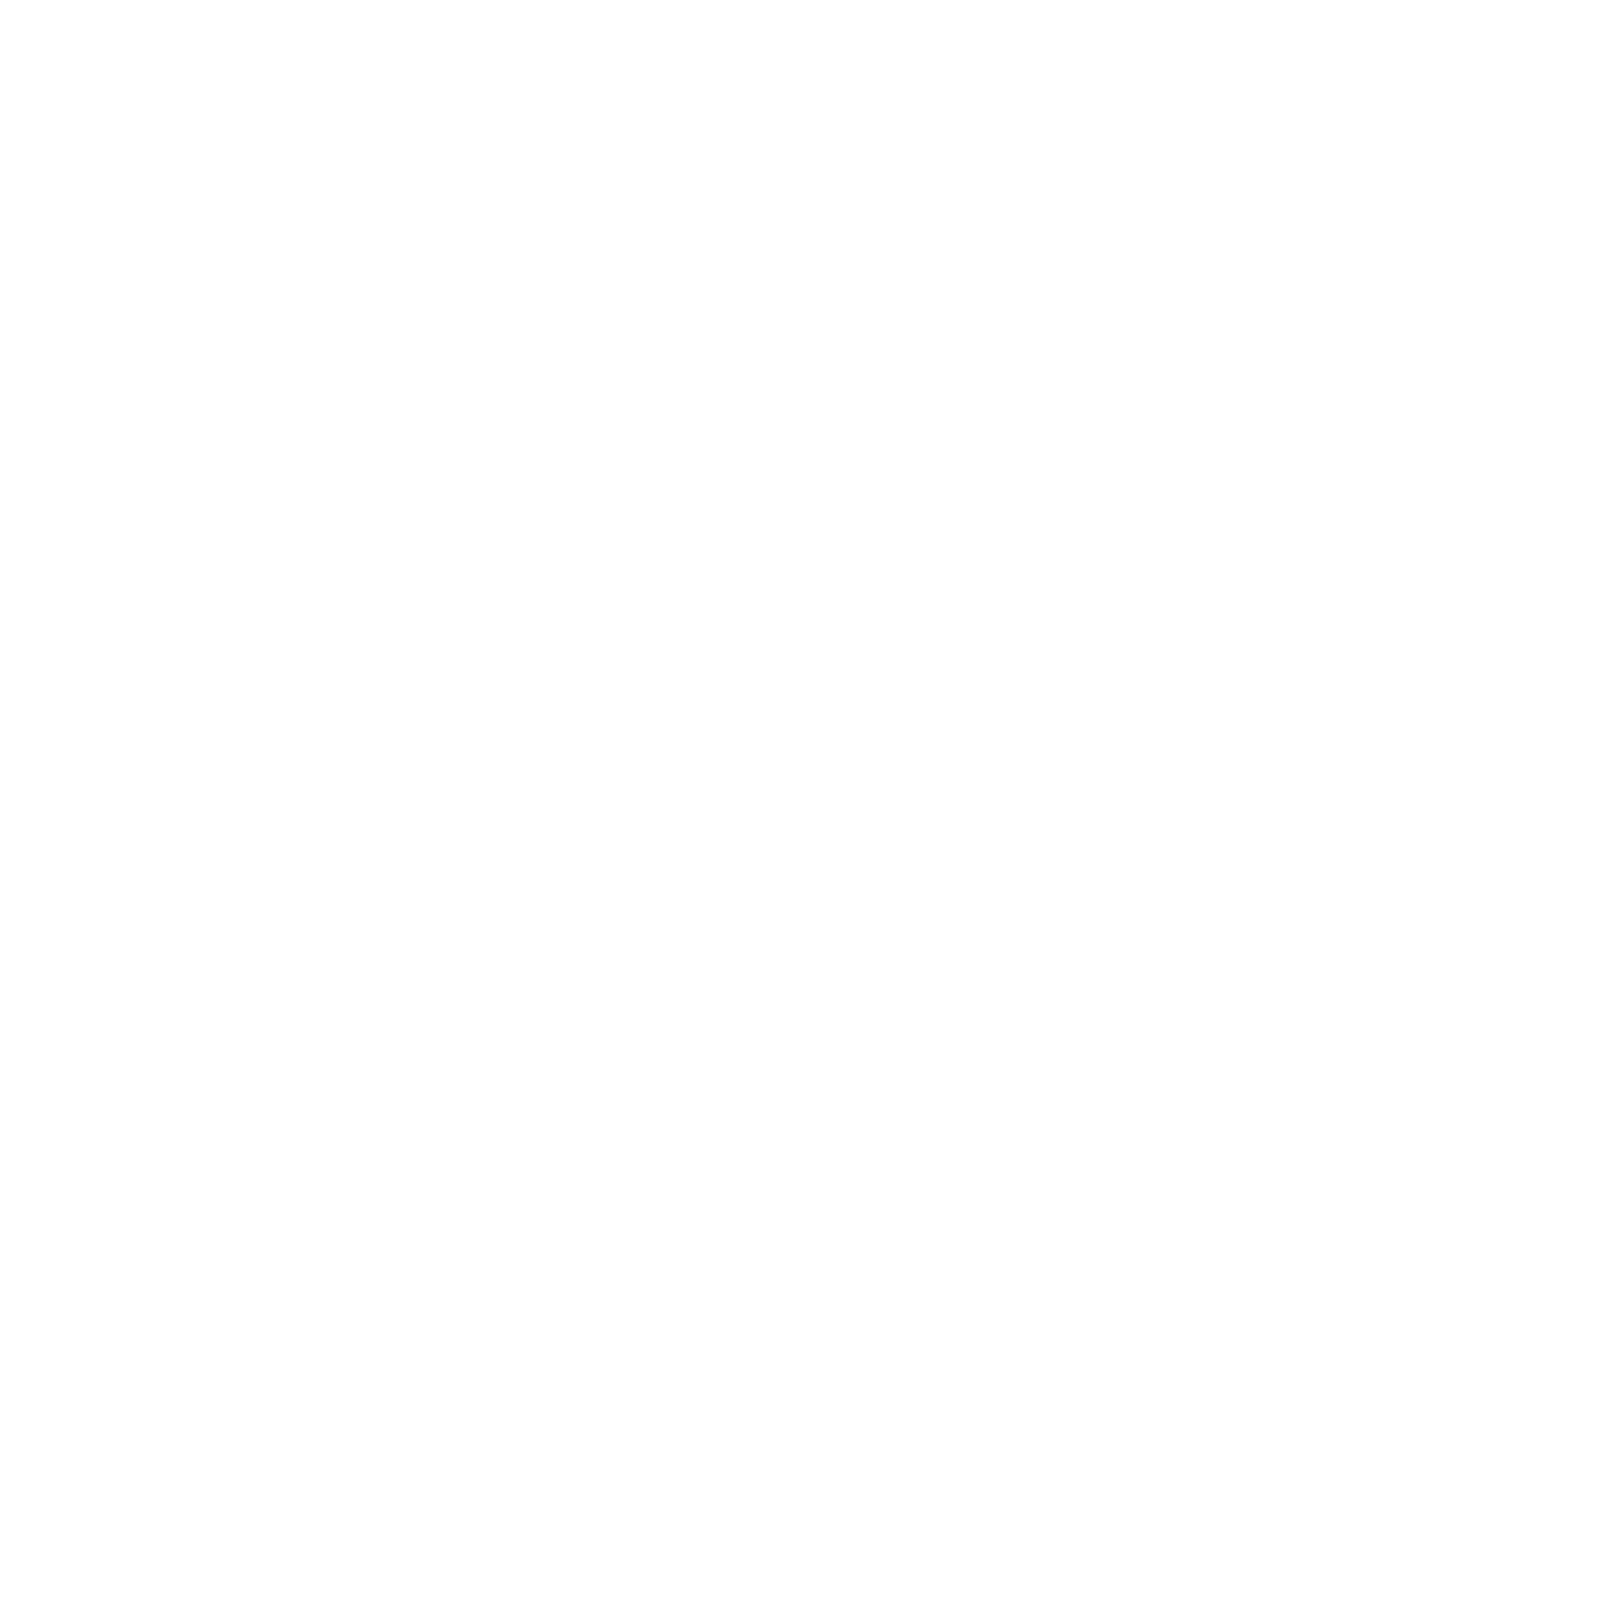 The Nordegg Canteen